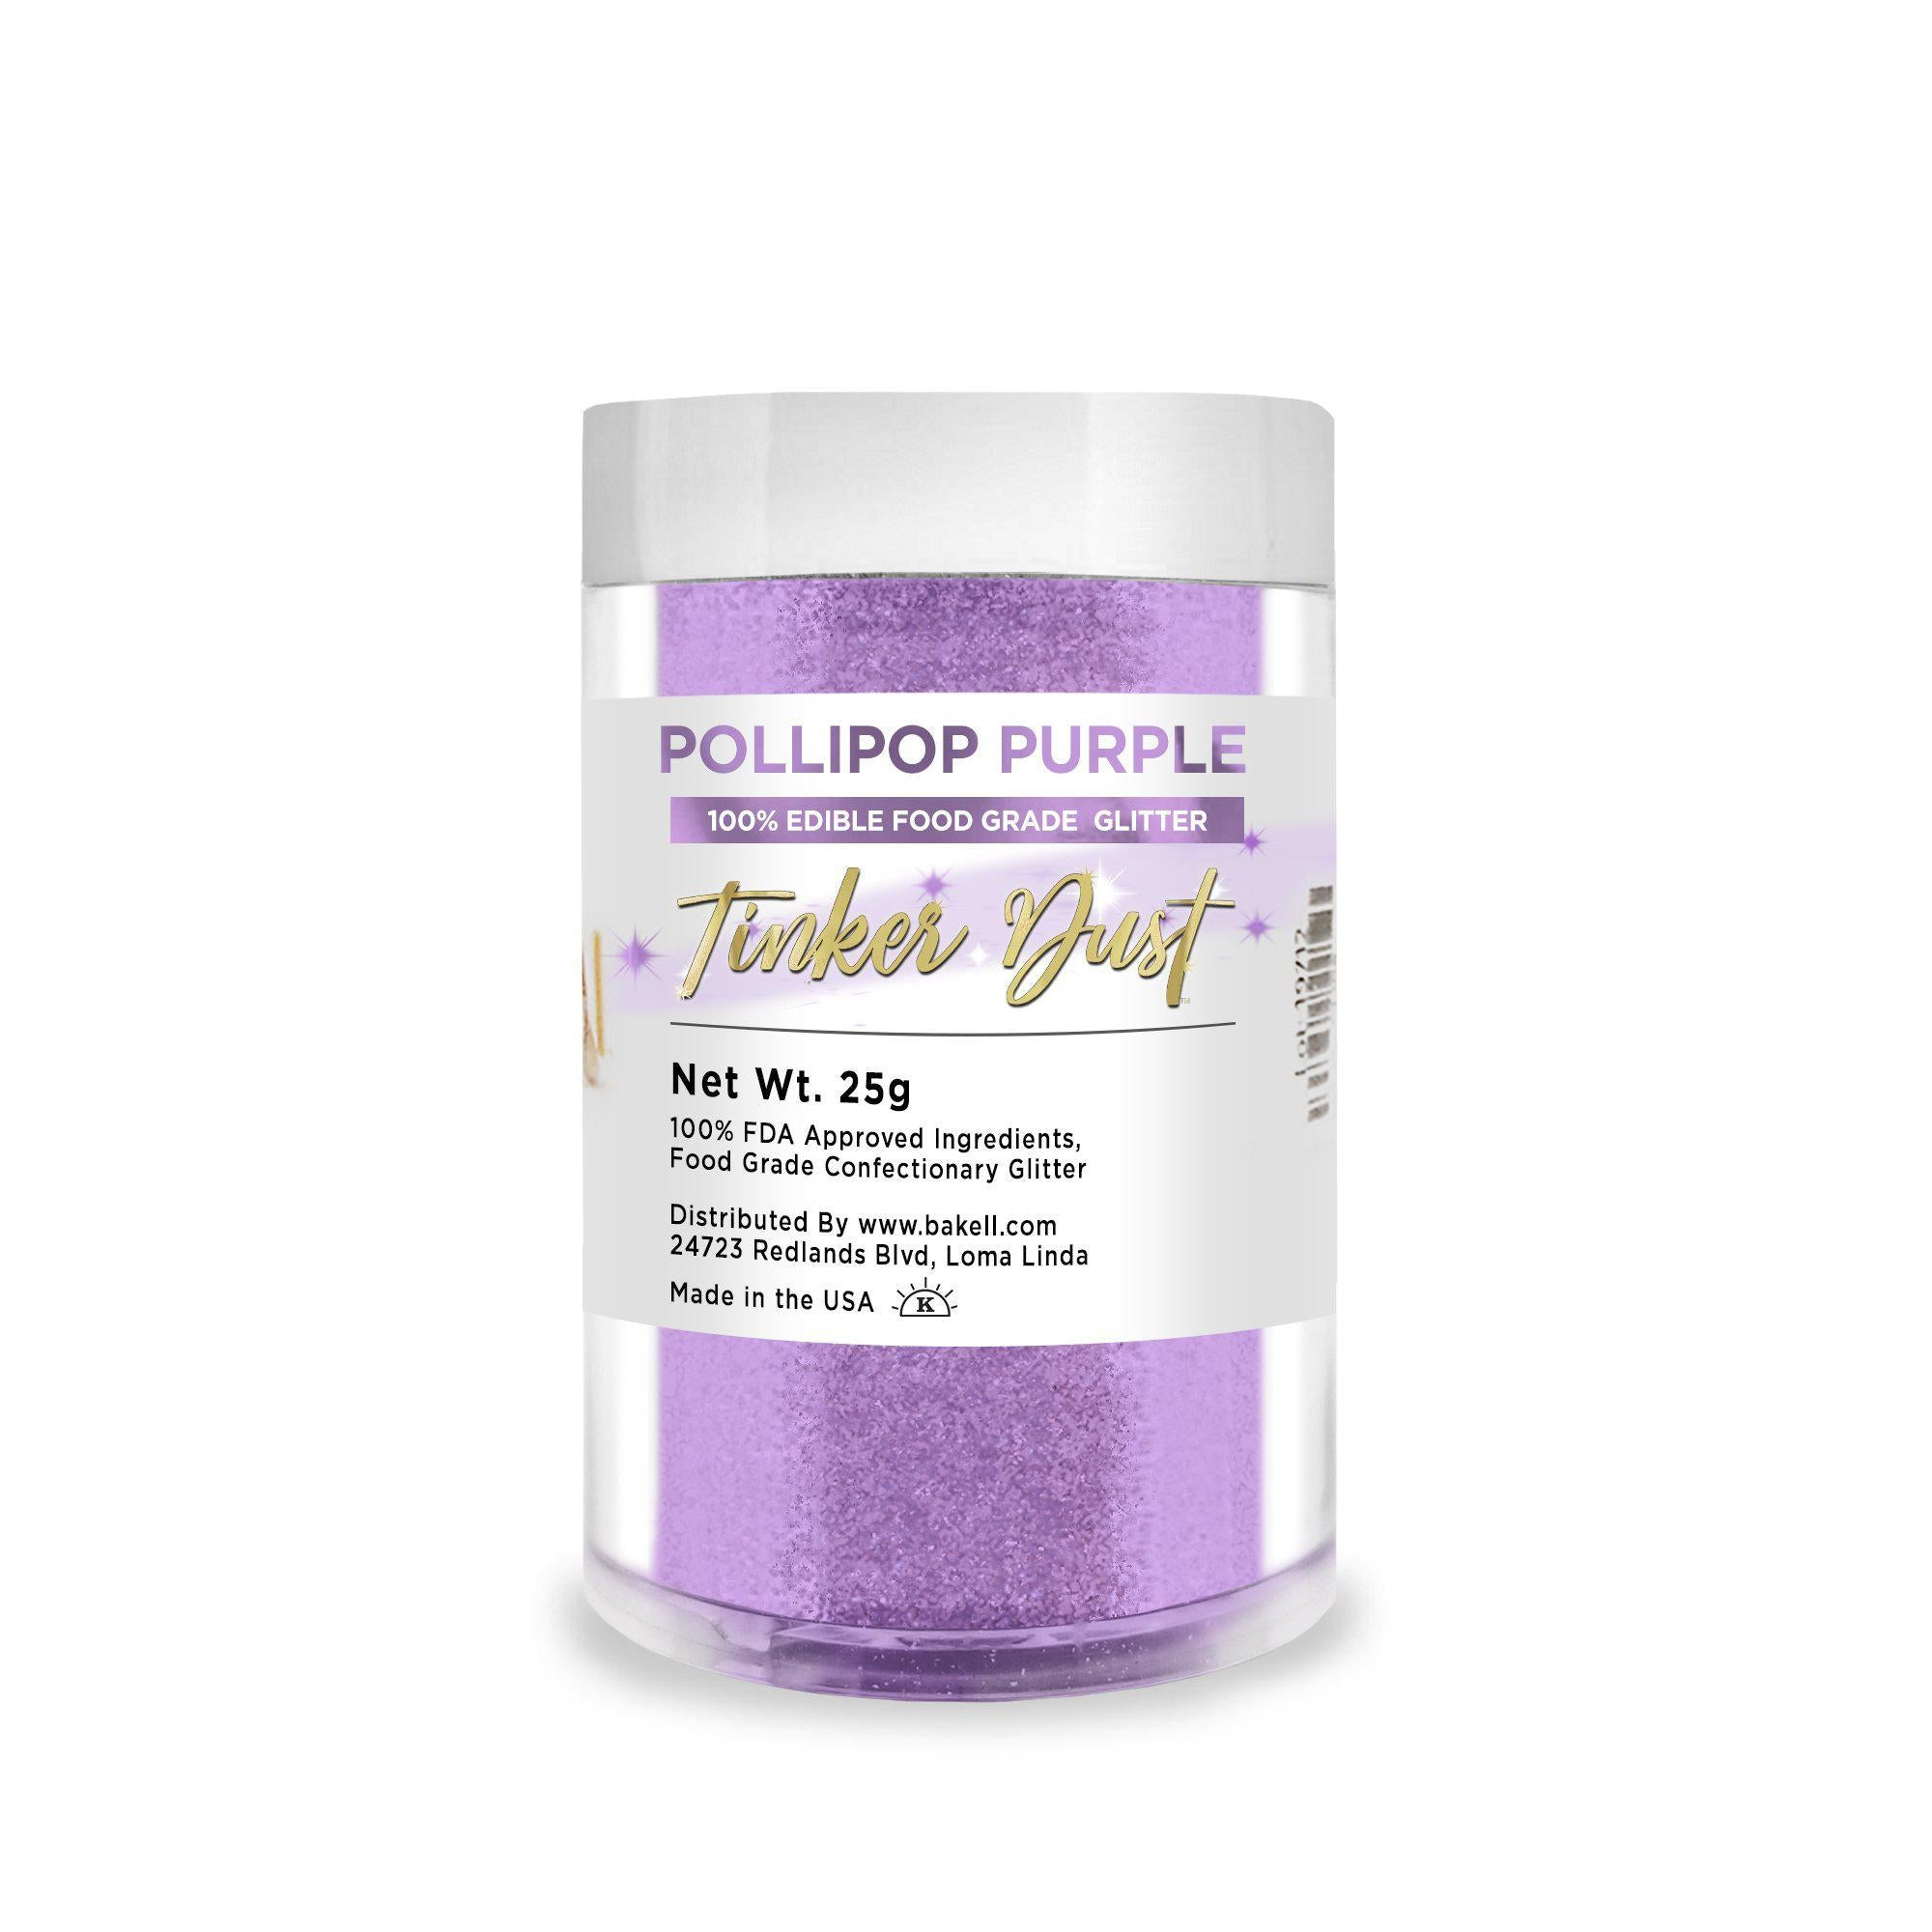 Pollipop Purple Tinker Dust Edible Glitter, 5g Jar | Food Grade Glitter-Tinker Dust-Bakell